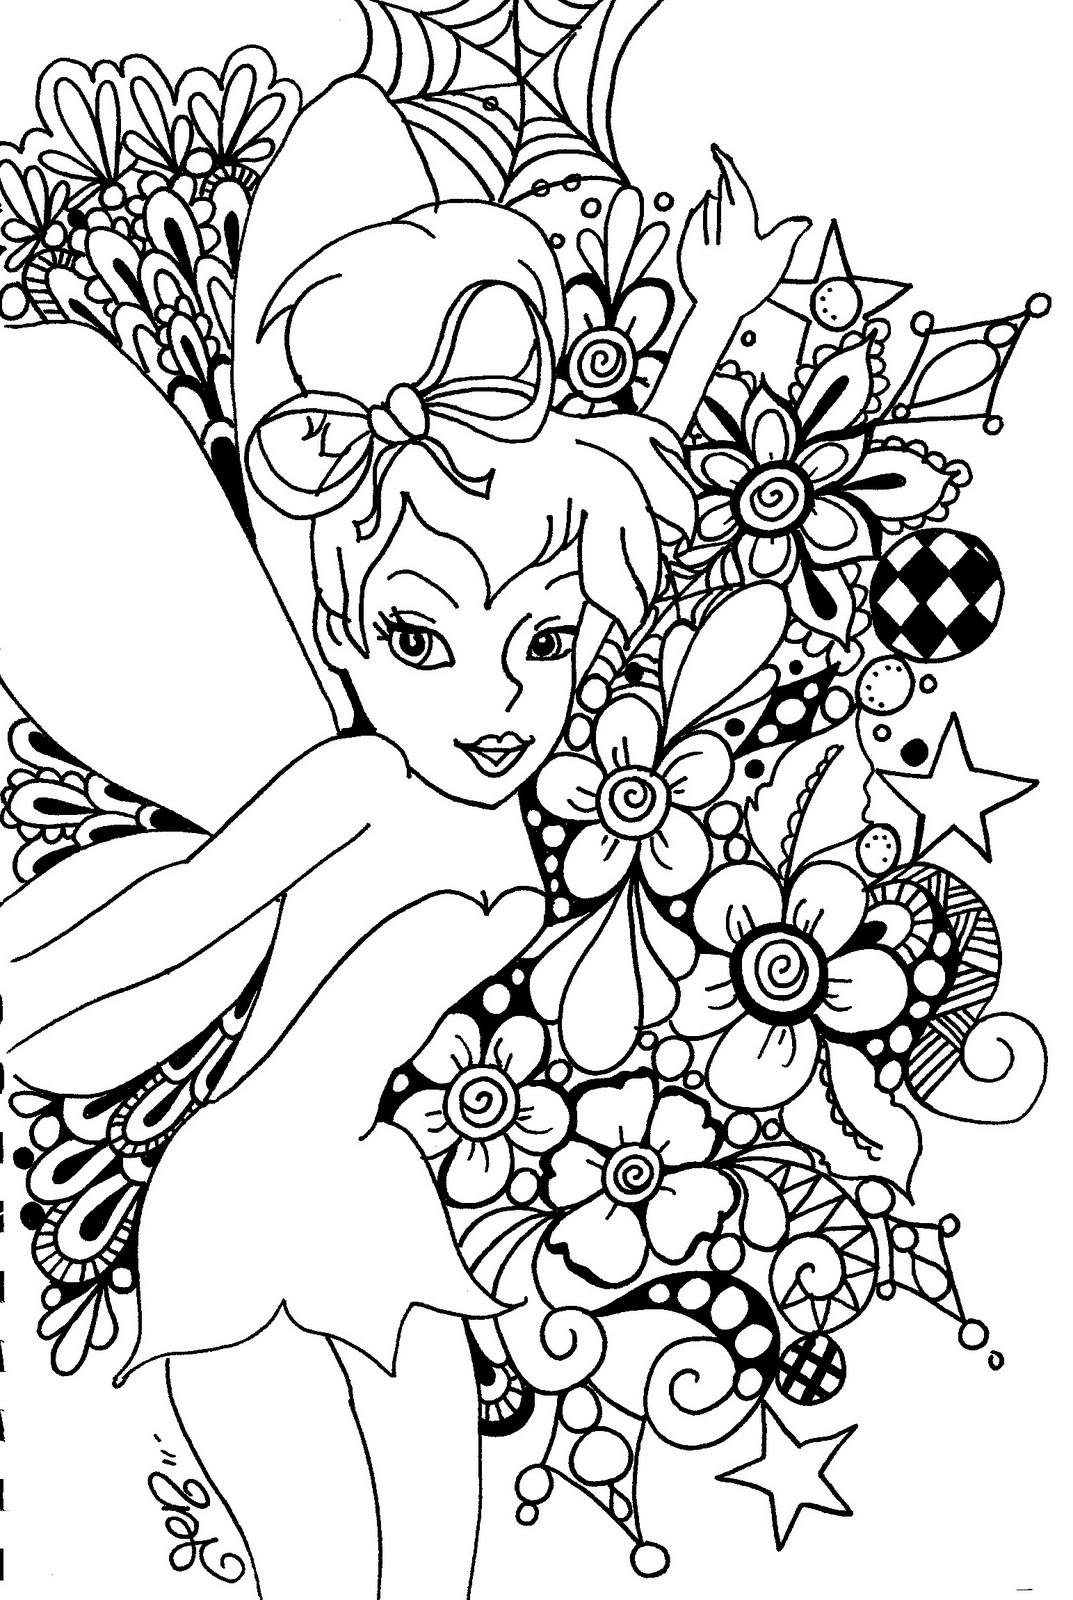 coloring pages onlinw - photo#4